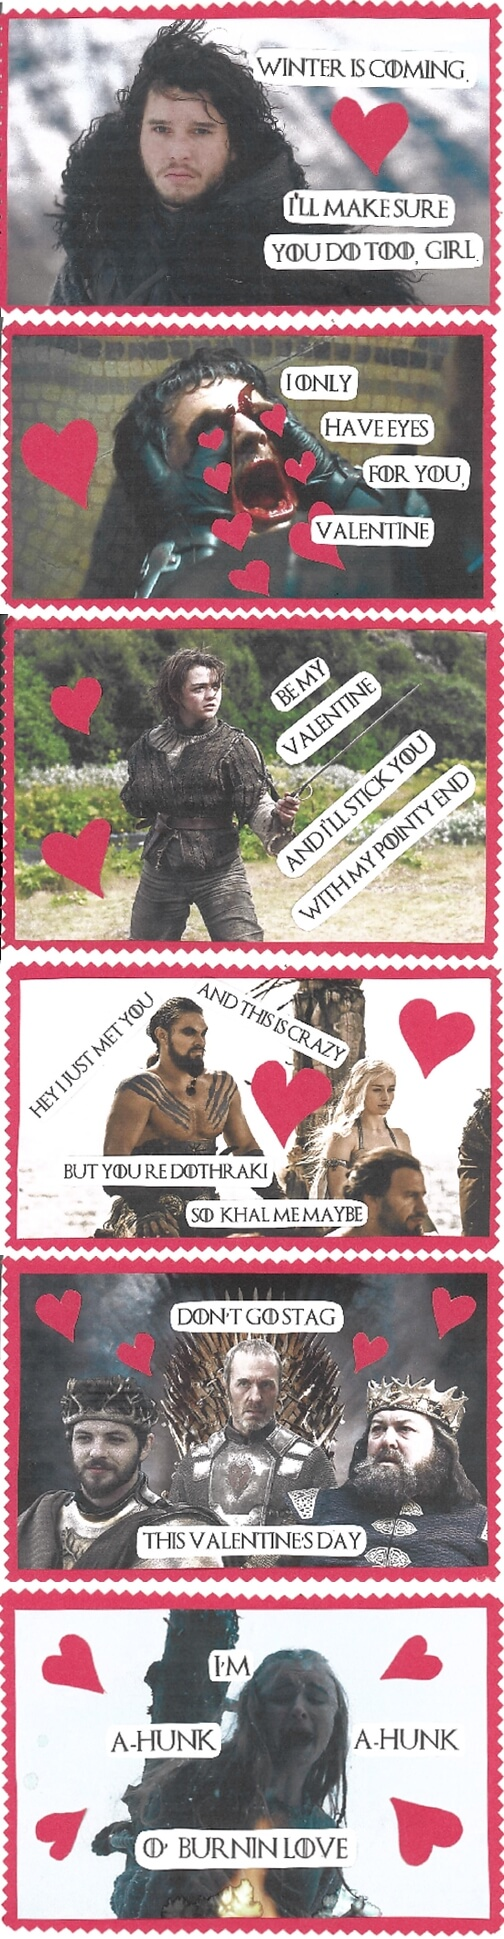 game of thrones valentine's day cards